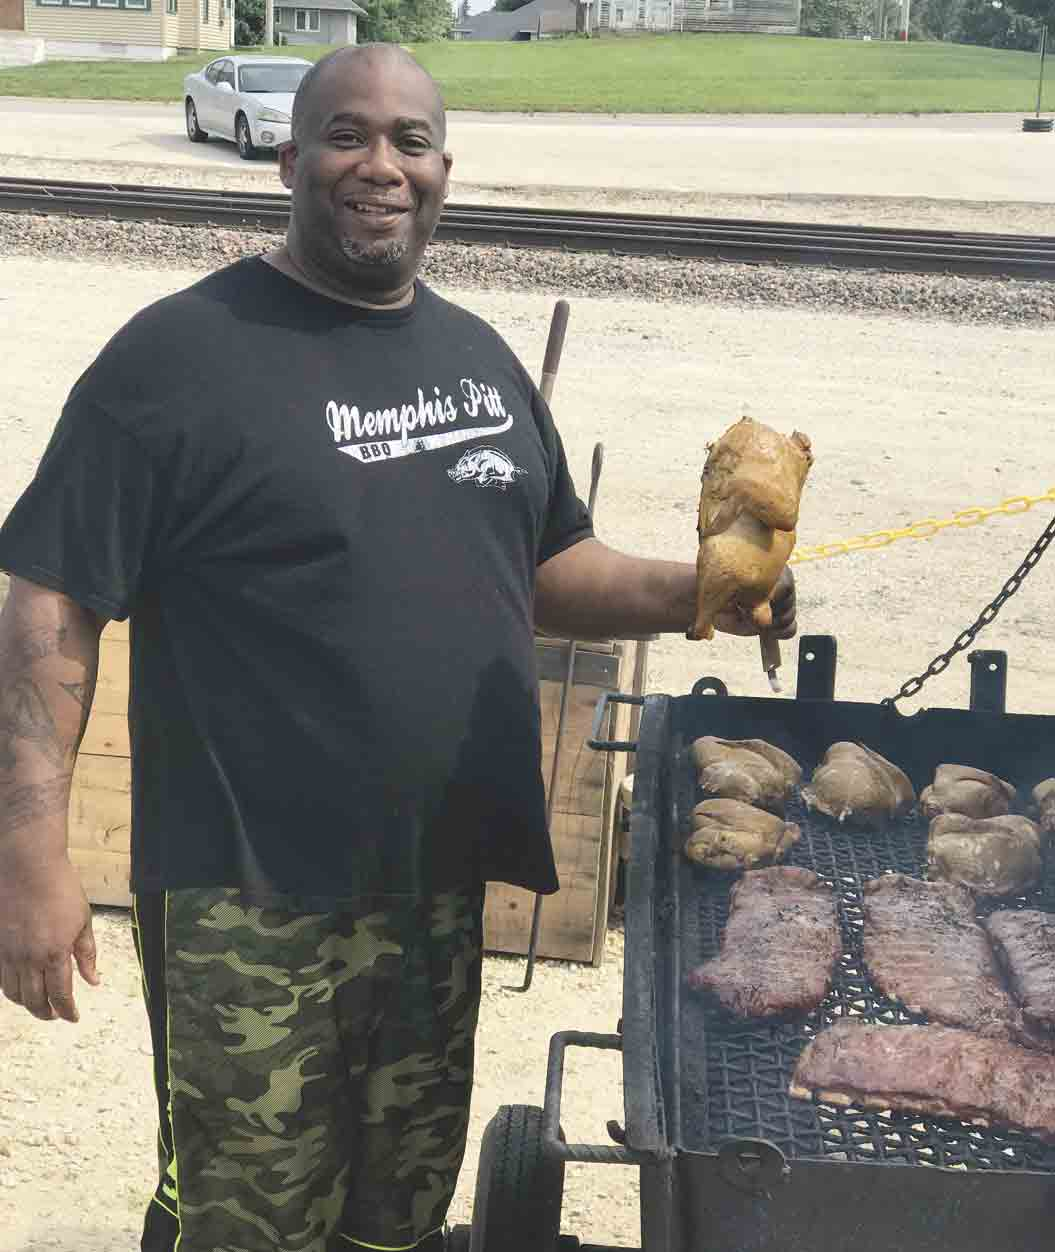 Memphis Williams, owner of the new Memphis Rae BBQ, smokes some brisket and chicken for the night's guests as the new Calmar restaurant is now officially open. Memphis Rae BBQ, located at 115 E. Main Street, features a full BBQ menu that will eventually expand to offer a Southern-...